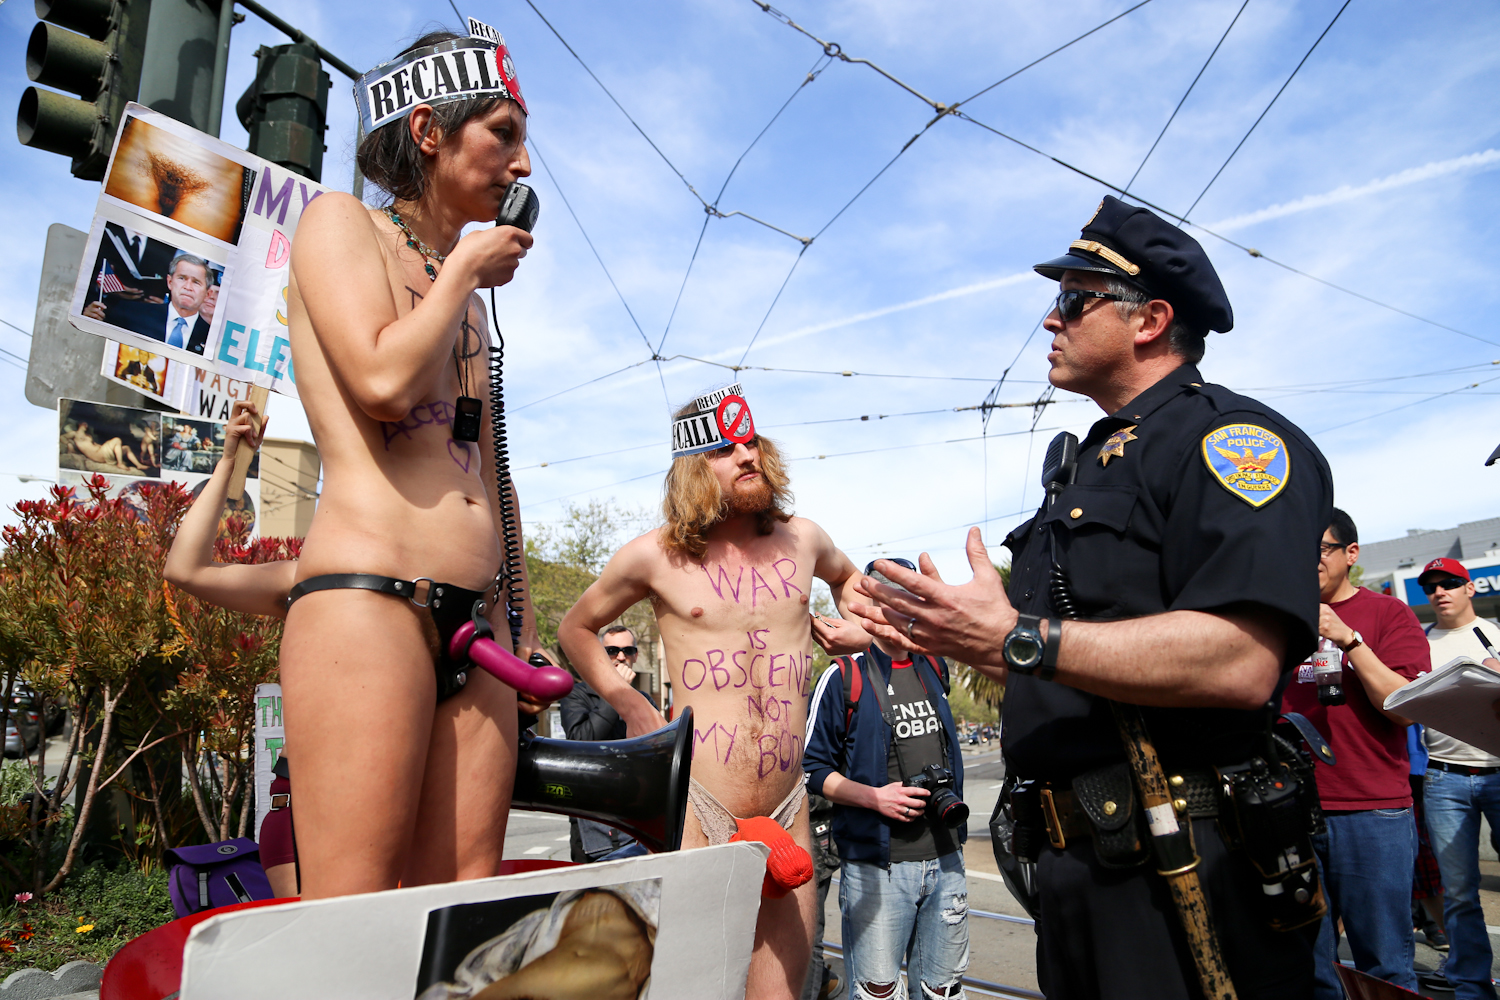 San Francisco Nudity Protest